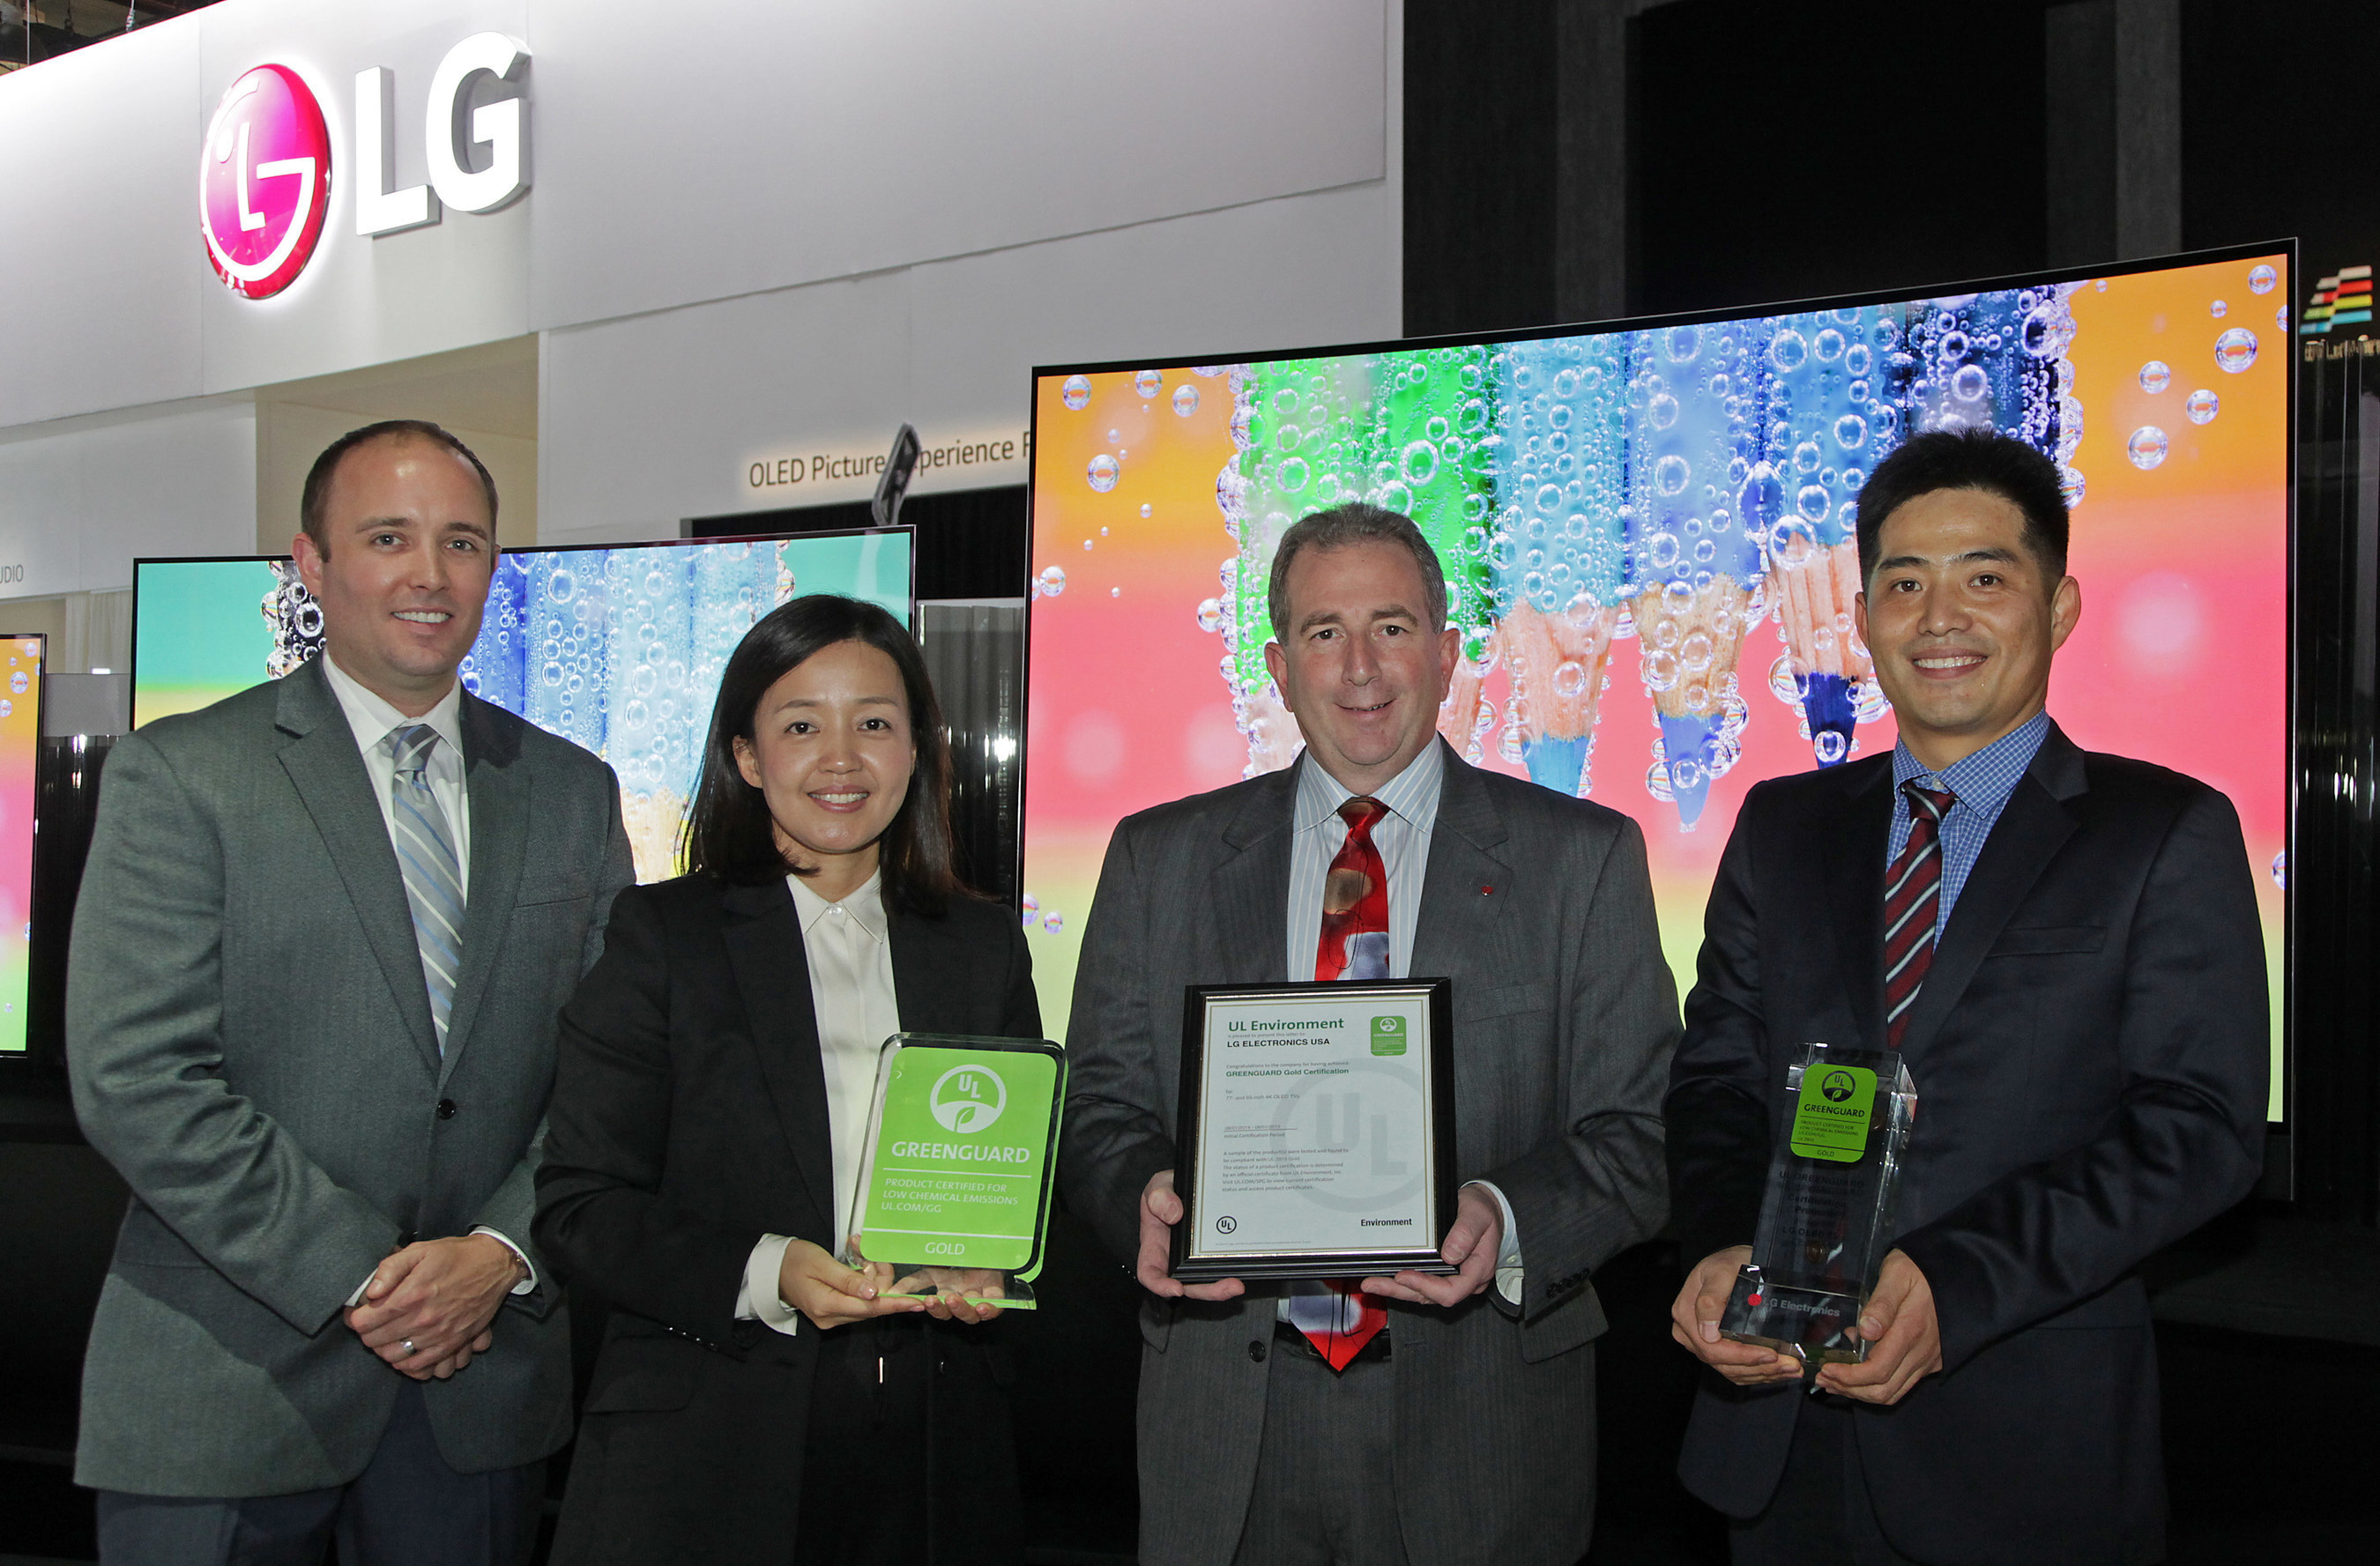 Celebrating UL Environment GREENGUARD certification for LG Electronics' 55-, 65-, and 77-inch class 4K OLED TVs at the 2015 International CES are left to right: Donald Mayer, Global Business Development Manager, UL Environment, Jamie Yeom, Global Account Director, Business Development & Marketing, UL Korea Ltd., Tim Alessi, LG's U.S. Head of New Product Development, and J.C. Lee, LG's U.S. Head of Standards and Environmental Compliance.